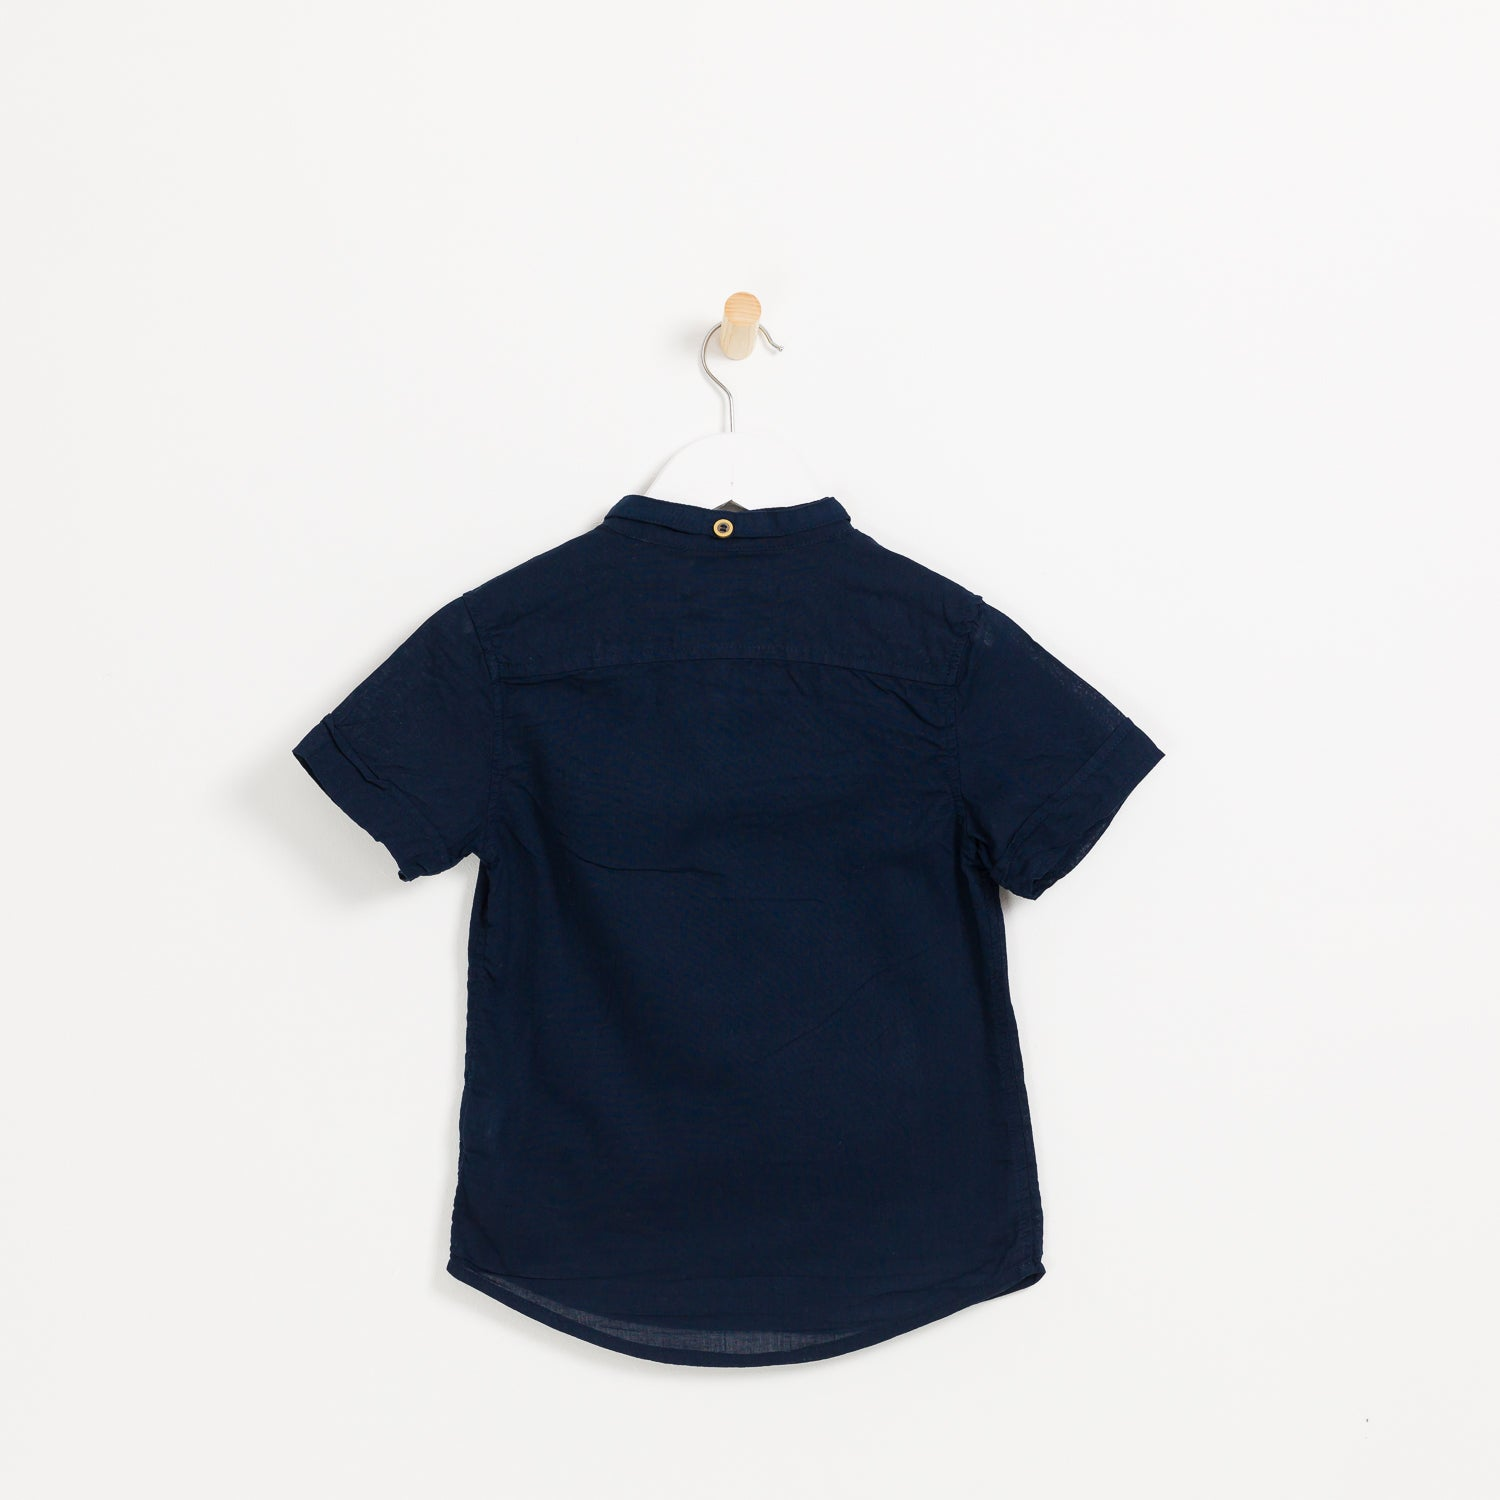 Kids boys navy cotton linen short sleeve collared shirt